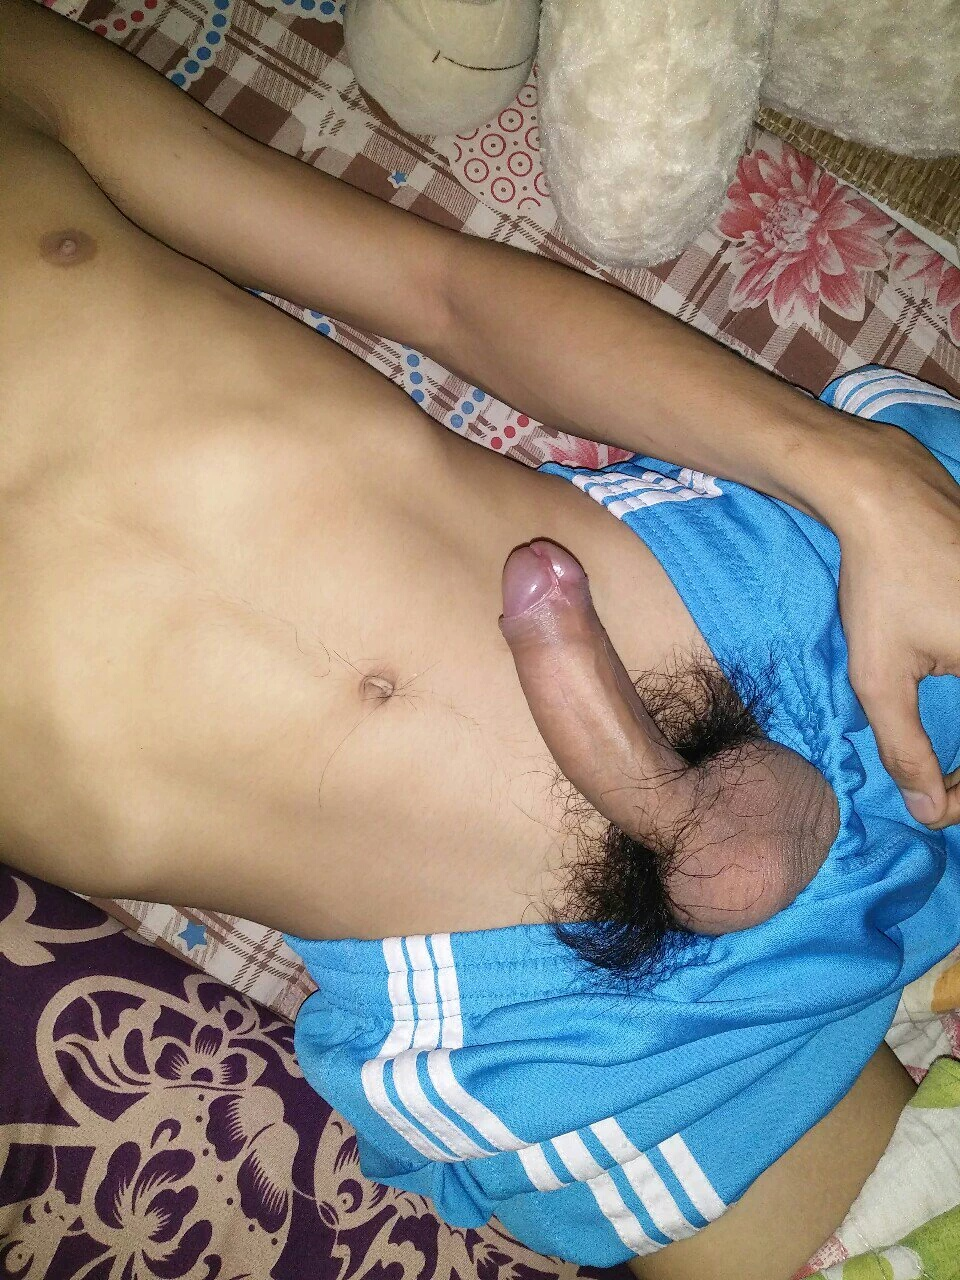 Nude filipino boys cum gay they039re not